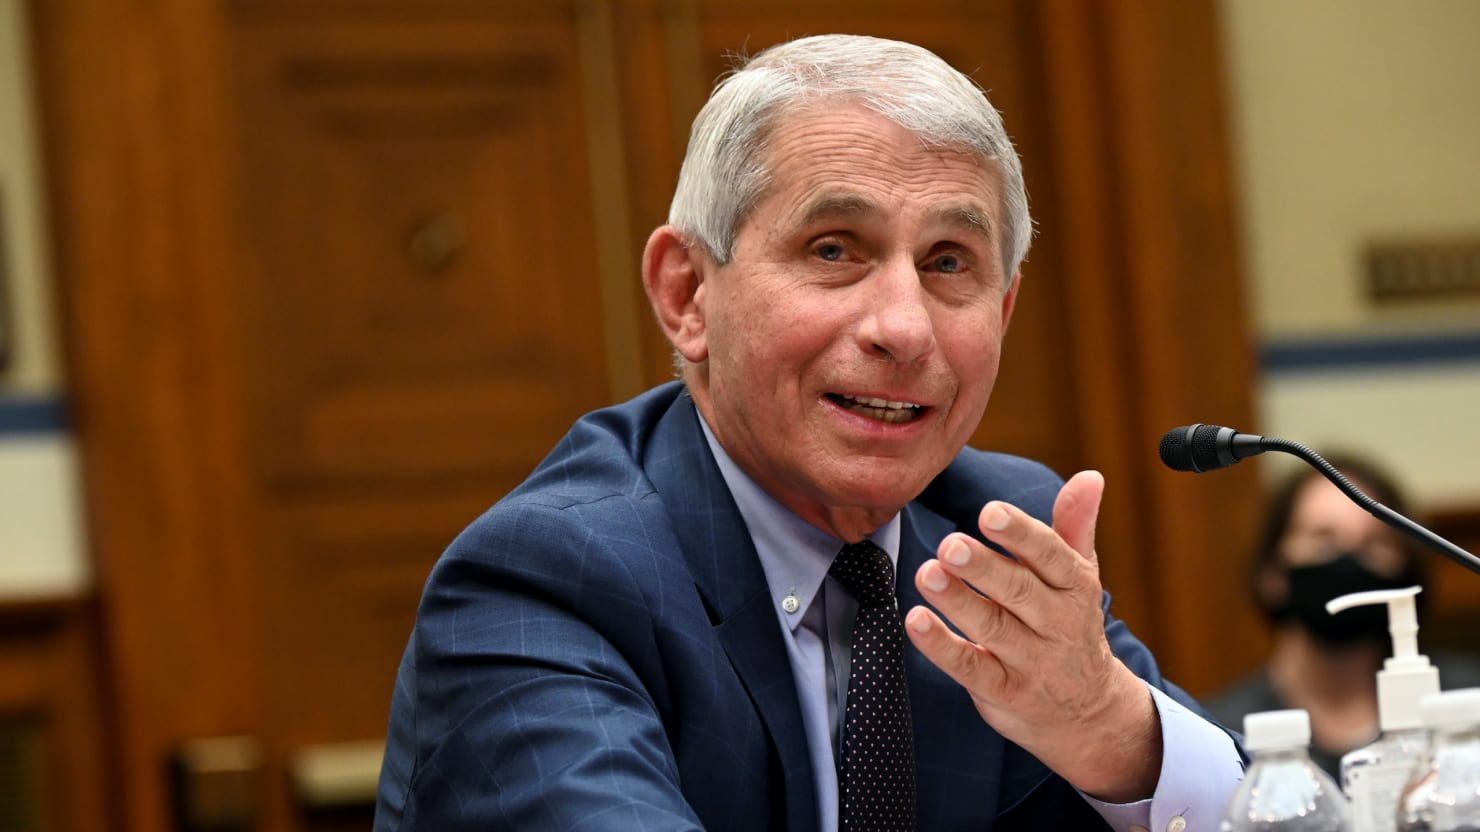 President Trump Lashes Out at Dr. Fauci for Explaining Science